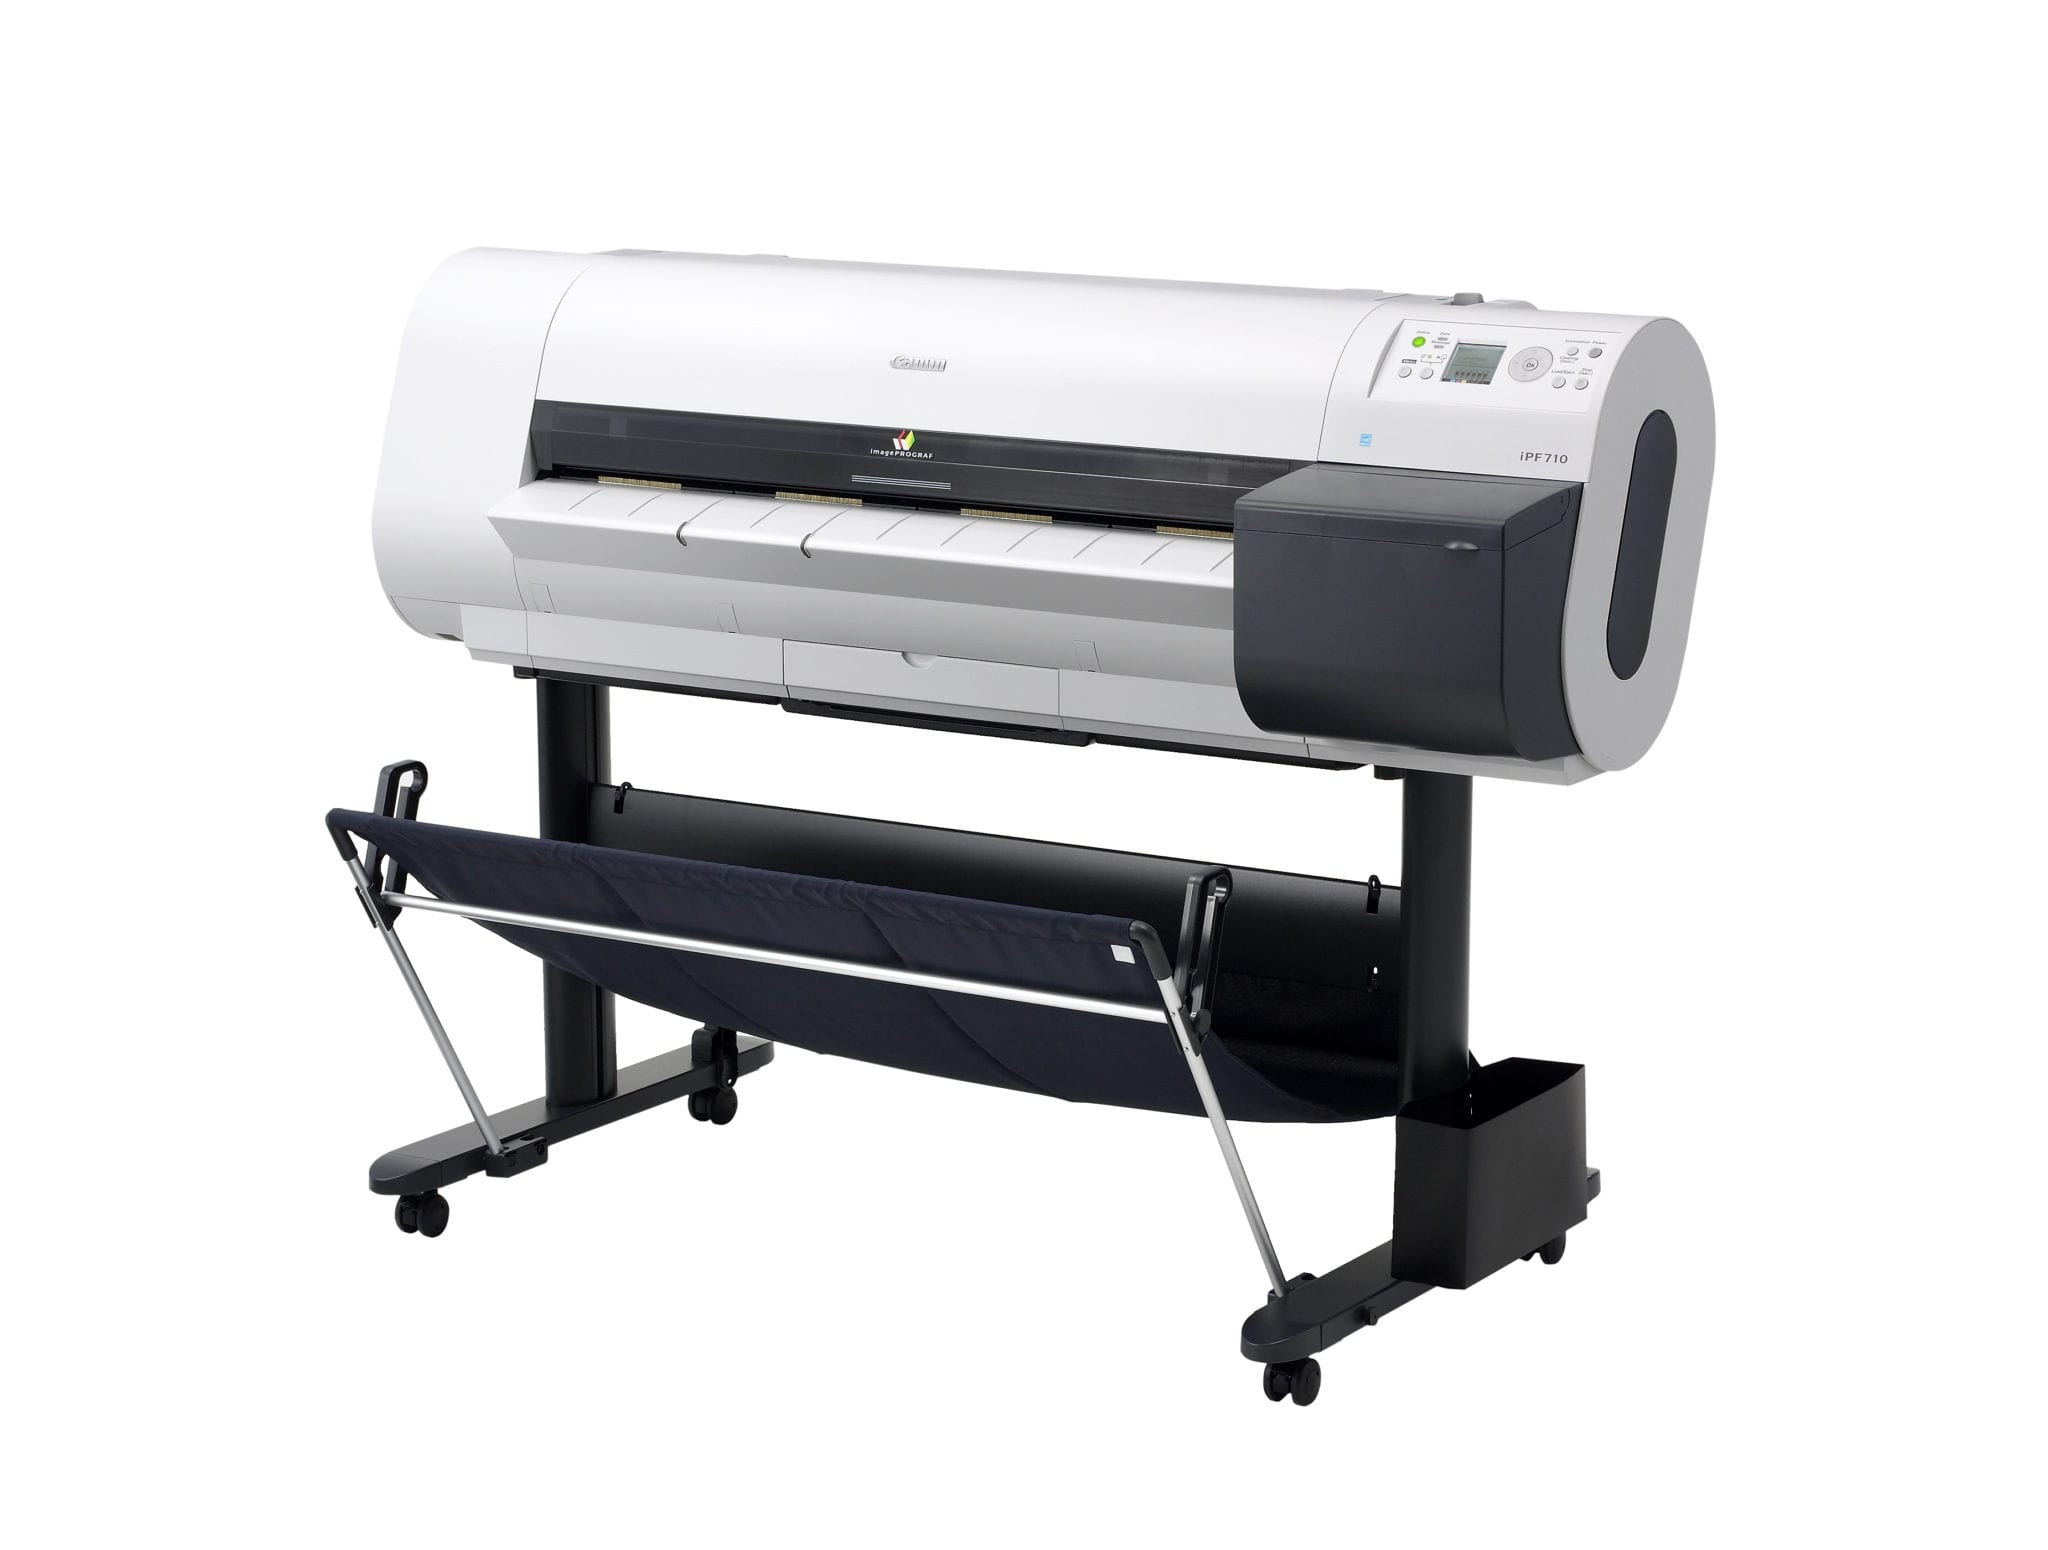 Magnificent Canon Ipf Large Format Printer Your Own Large Format Cushing Canon Large Format Printer Extended Survey Program Canon Large Format Printer Supplies dpreview Canon Large Format Printers